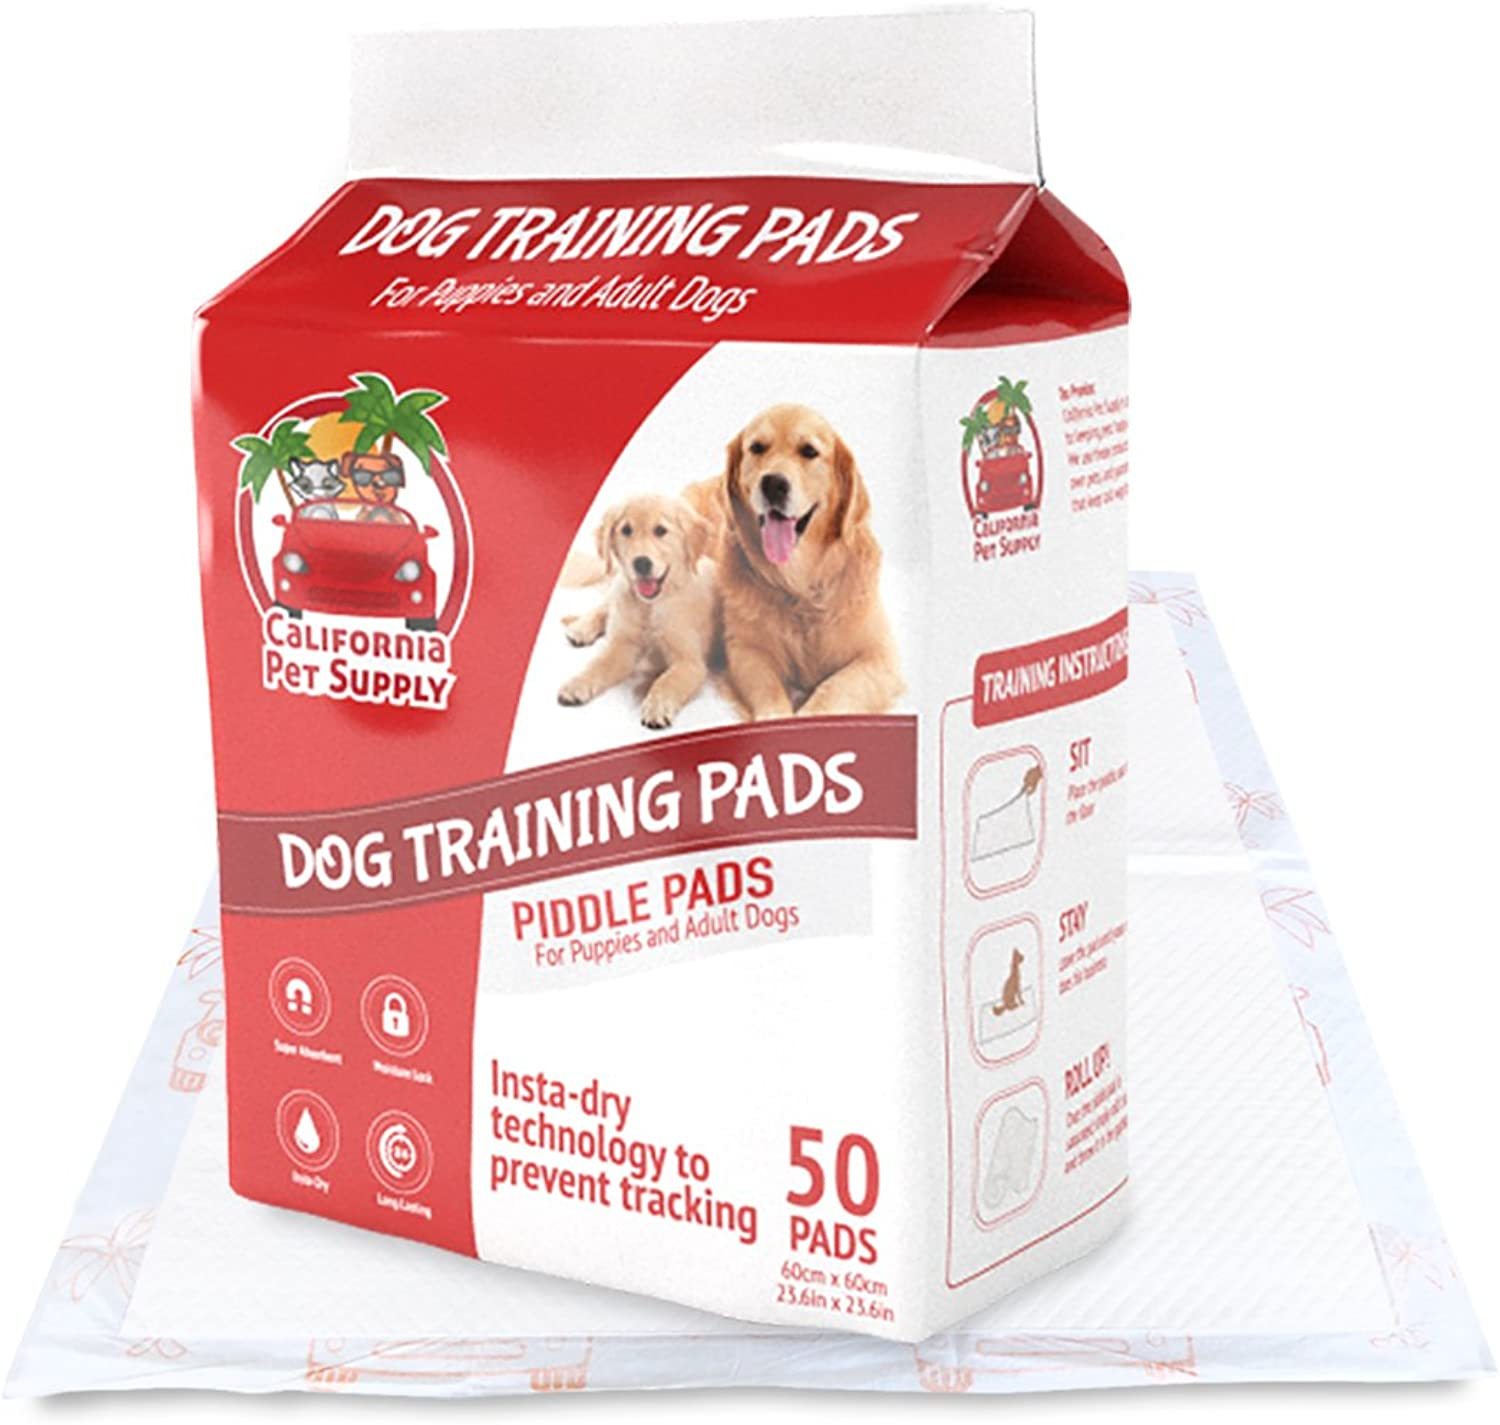 Dog Training Pads MaximumAbsorption Puppy Pads w InstaDry Technology offer No Tracking. Save Money & Frustration with LeakResistant Pads from California Pet Supply  23.6  x 23.6  (50Pack)